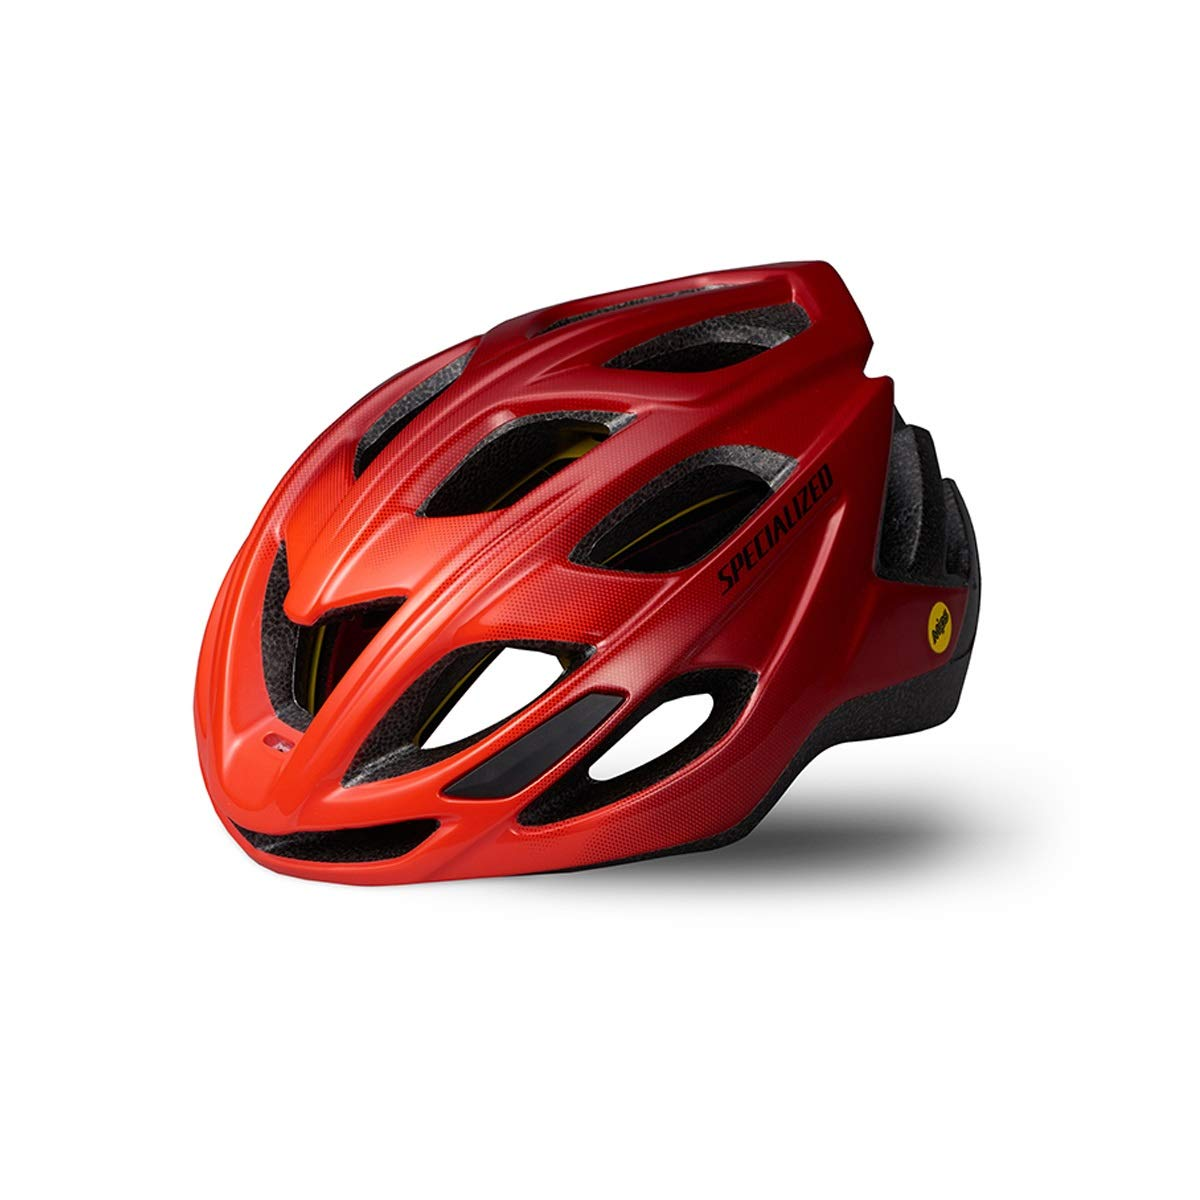 Hengtongtongxun Casual Commuter Cycling Helmet,Bike Helmet with in-Molded Reinforcing Skeleton for Added Protection - Adult Size, Comfortable, Lightweight, Breathable Size can be Adjusted, The Latest